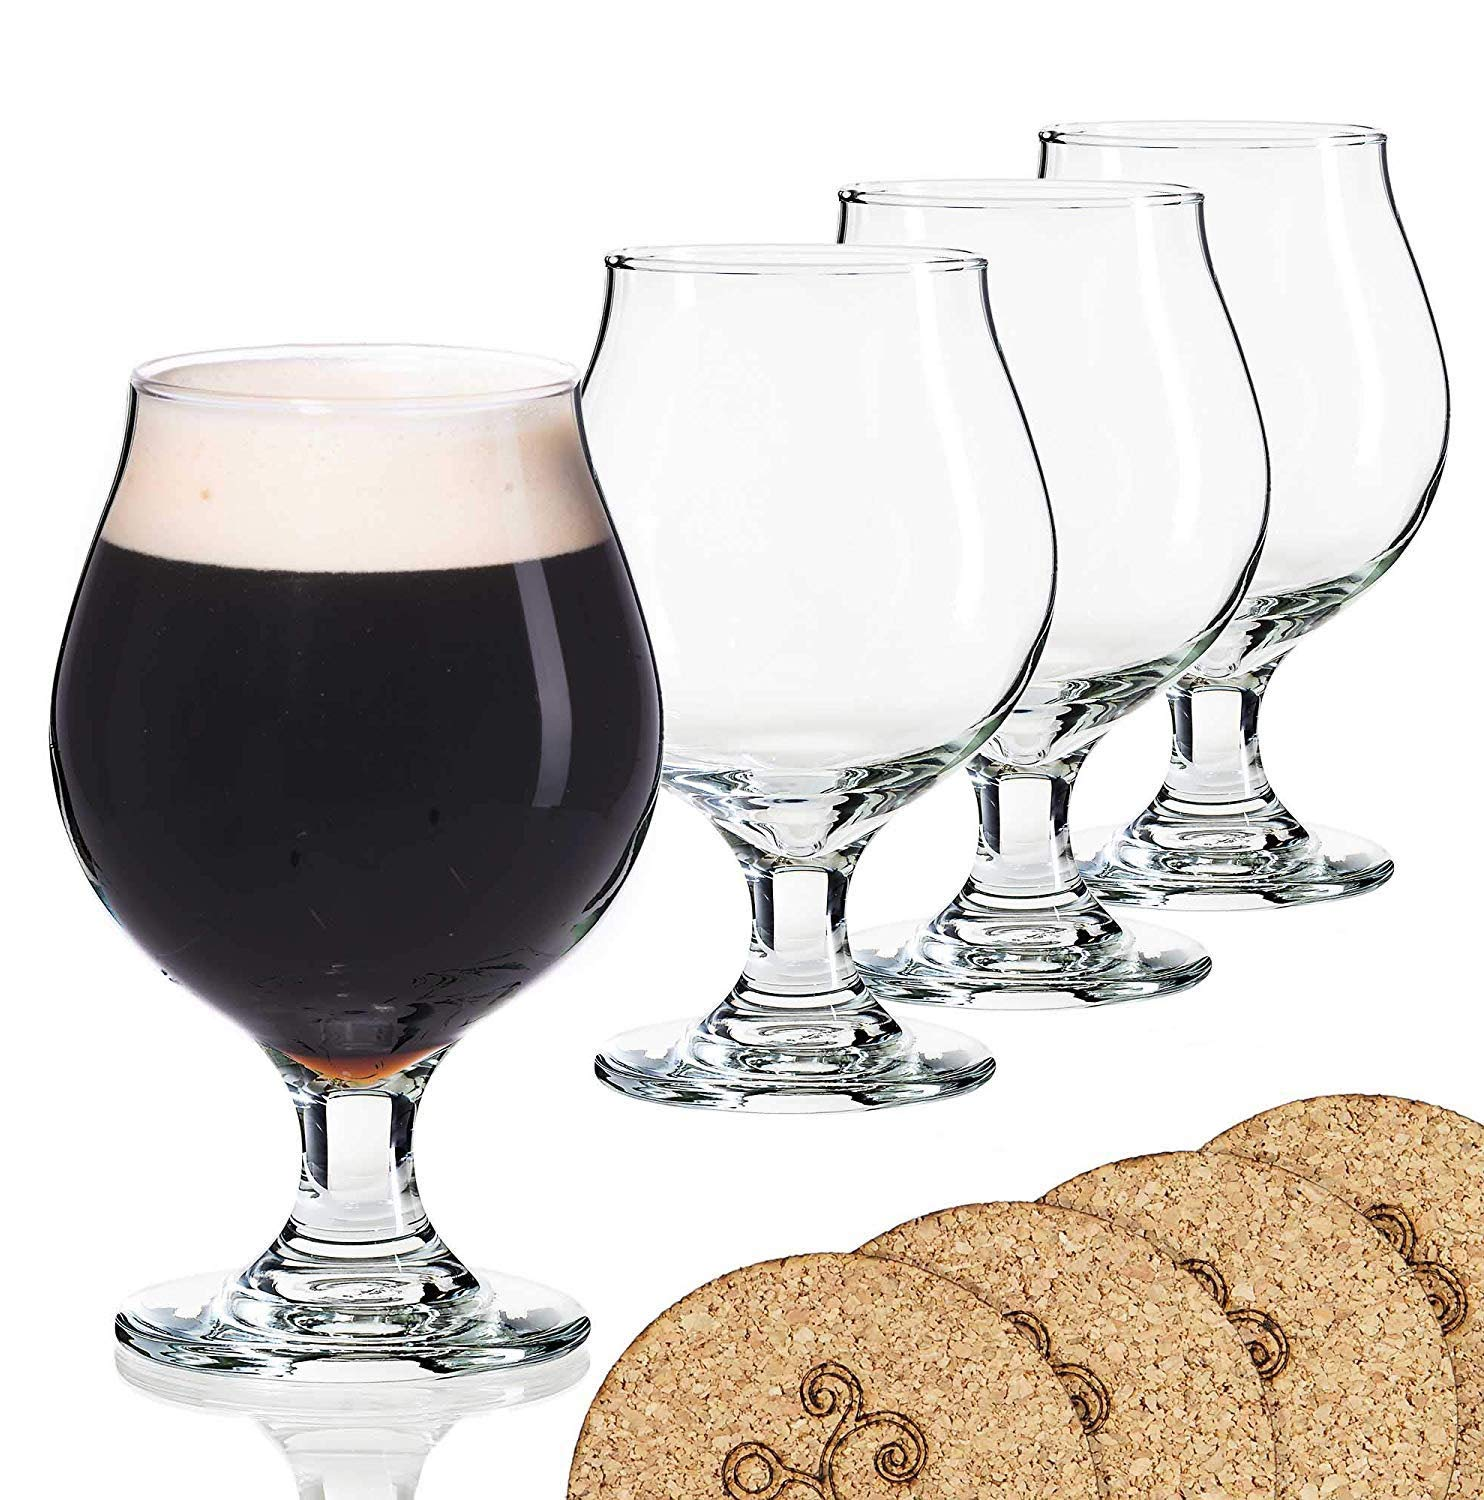 Libbey Beer Glass Belgian Style Stemmed Tulip - 16 oz Lambic Beer Glasses - set of 4 w/coasters